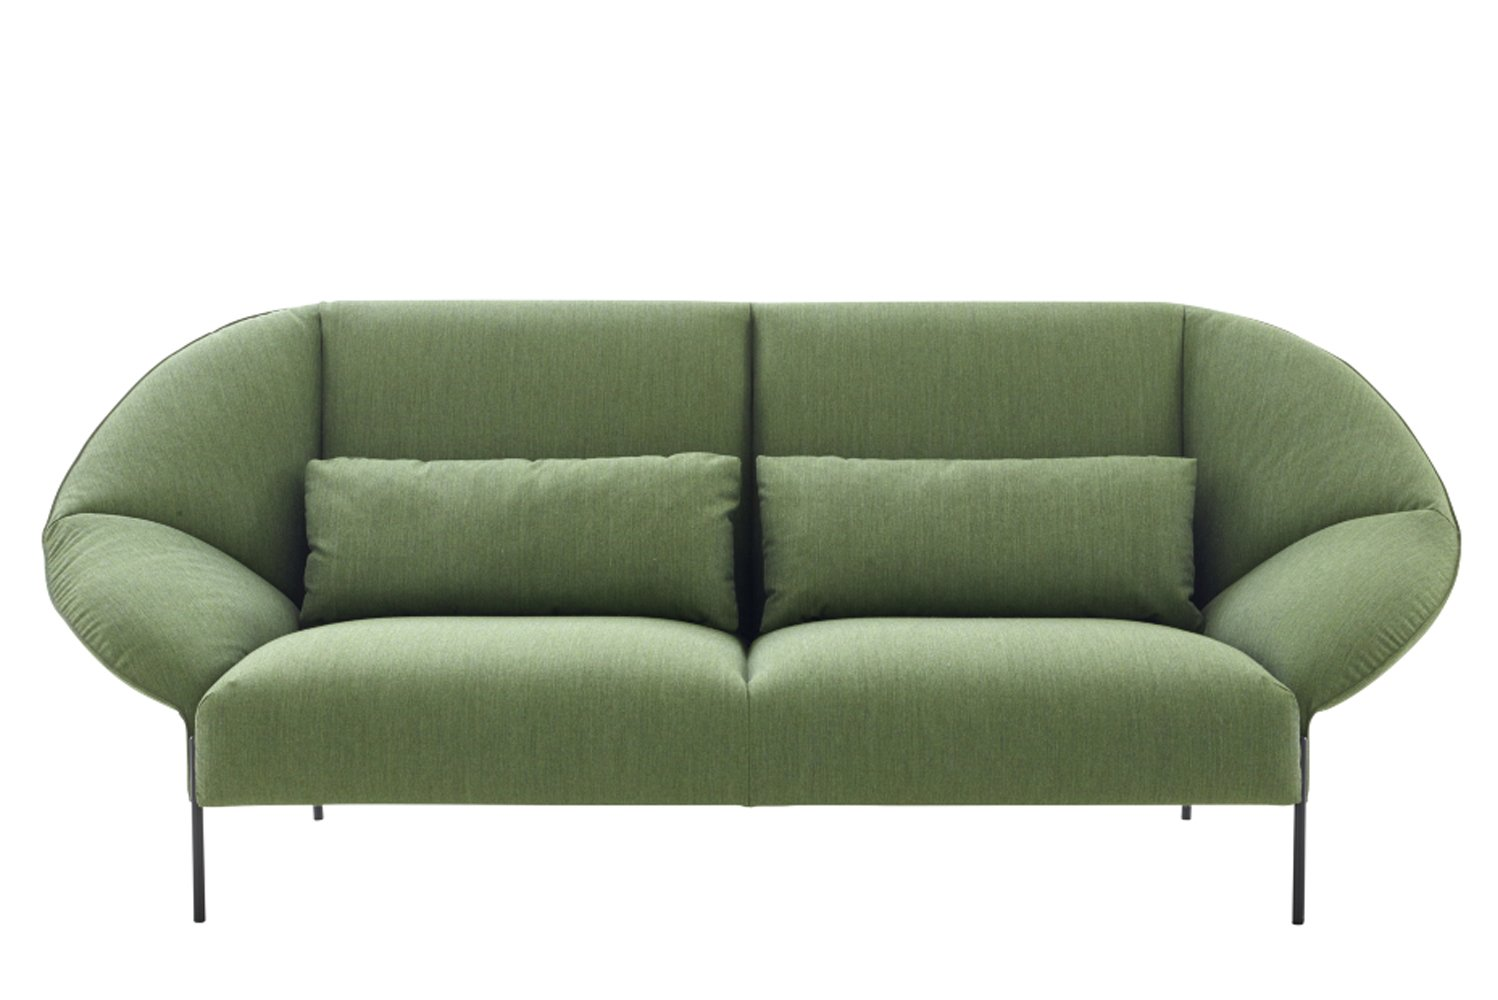 """The upholstered furniture follows an intriguing concept of """"folding a piece of paper to create a closed shape."""""""